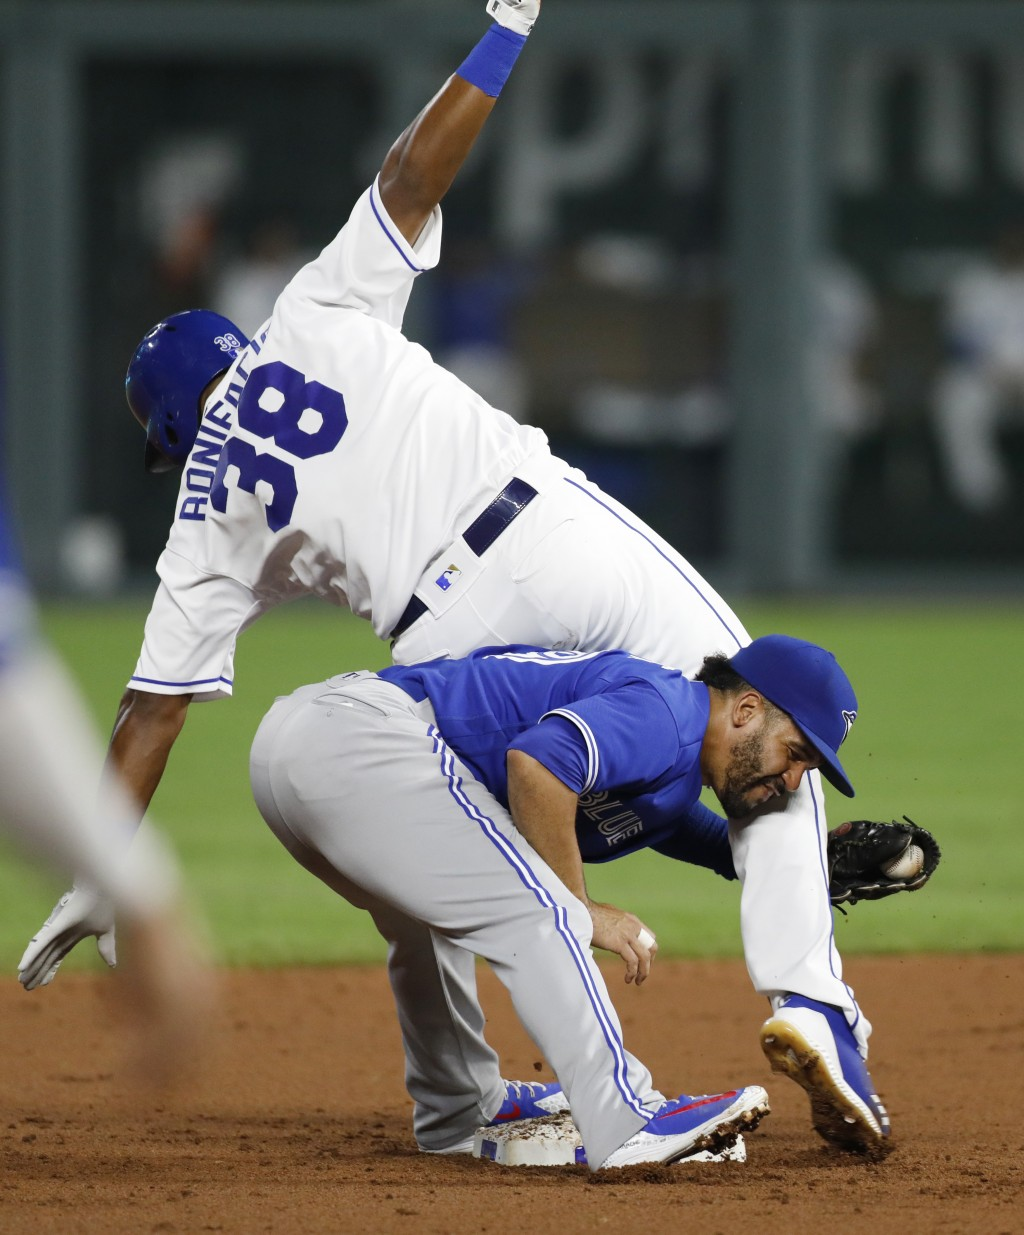 Kansas City Royals' Jorge Bonifacio (38) is tagged out at second base by Toronto Blue Jays second baseman Devon Travis while attempting to stretch a s...